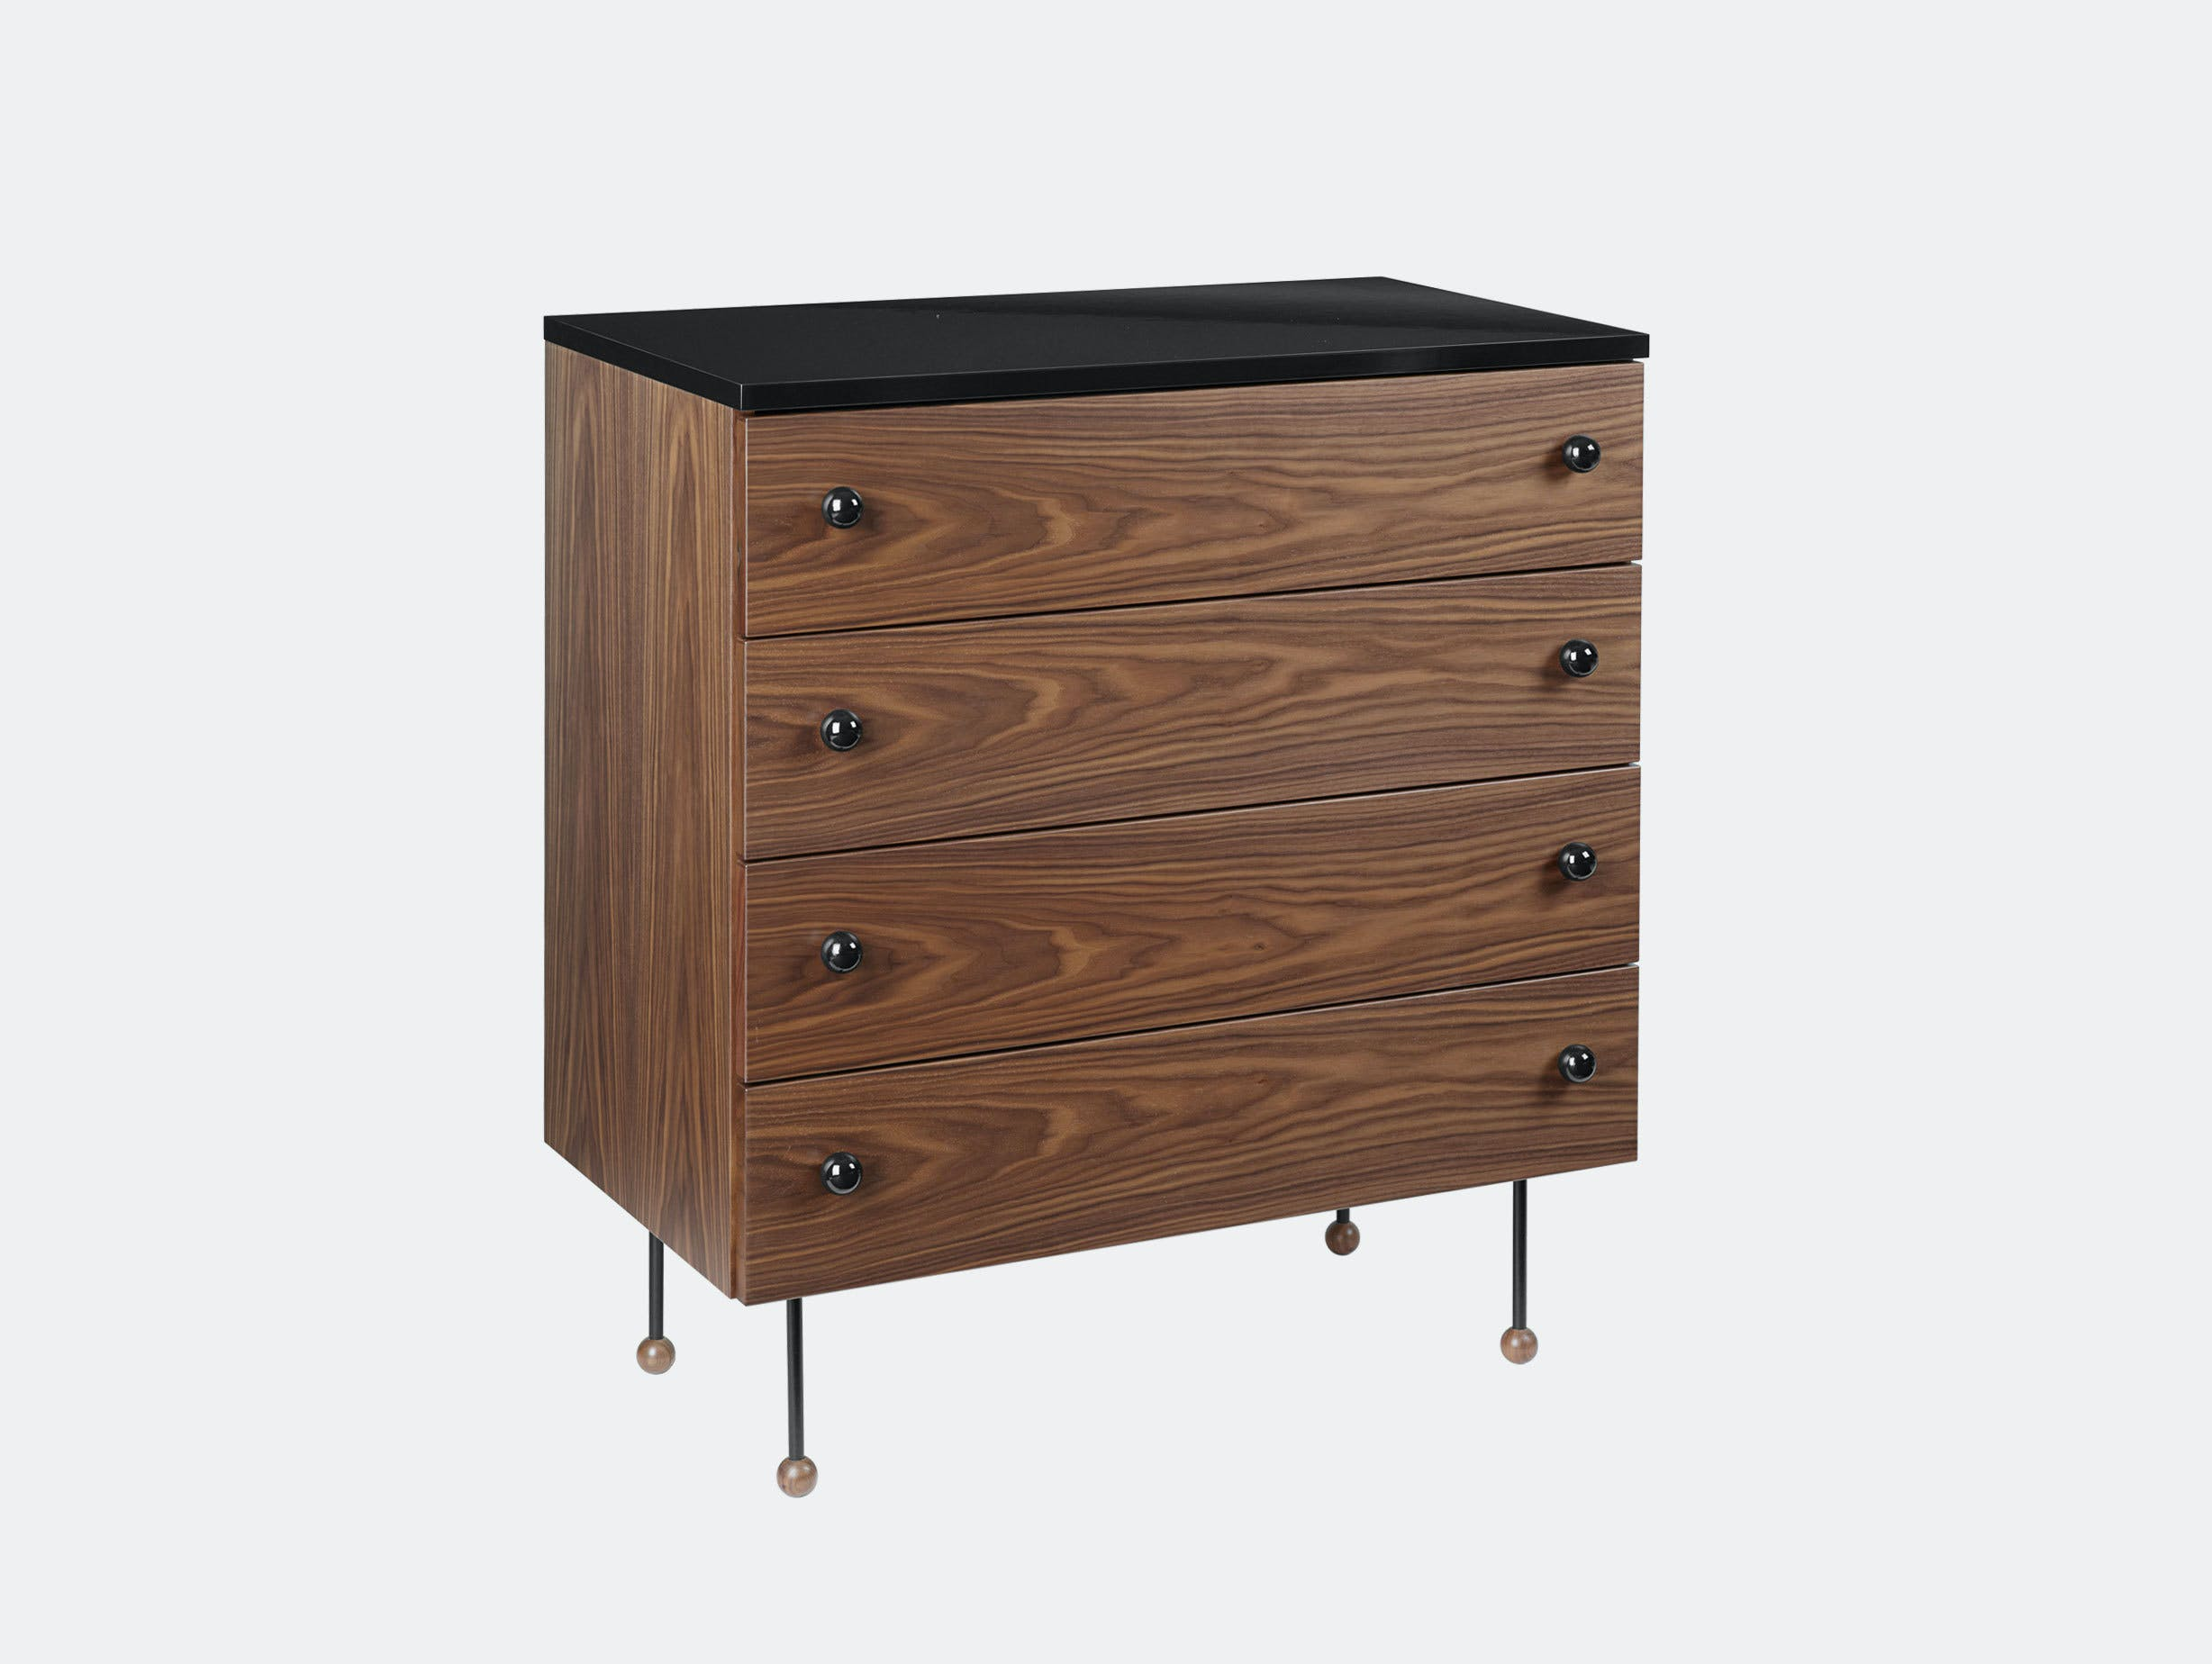 Gubi 62 Series Chest of Drawers Greta Grossman